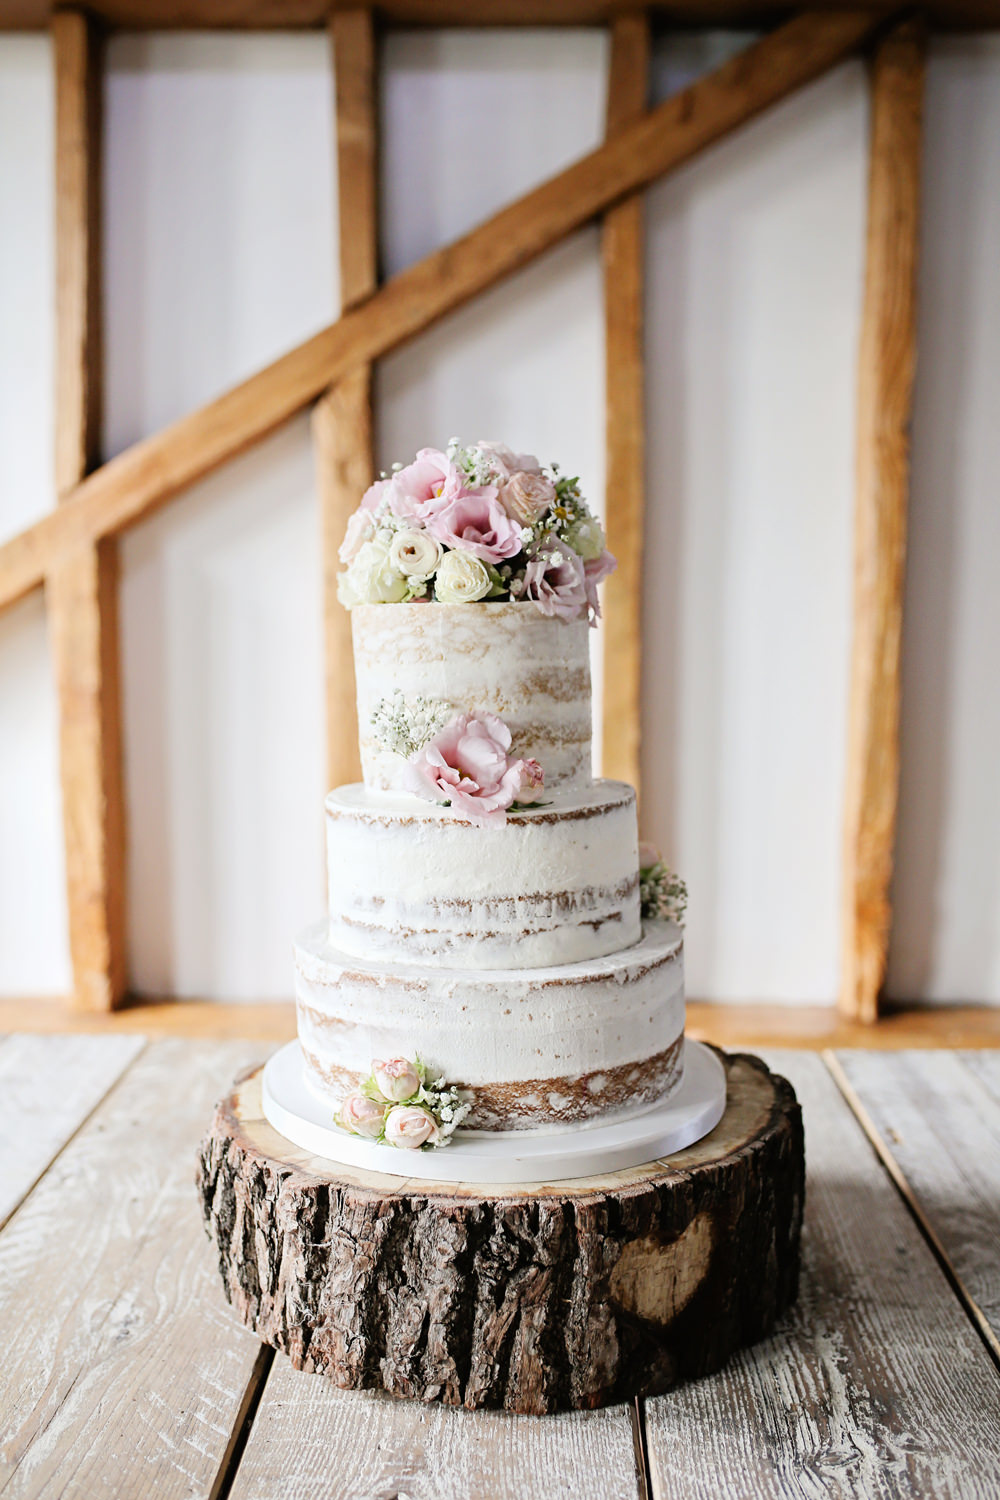 Semi Naked Cake Buttercream Flowers Log Stand Pink Milling Barn Wedding Victoria Mitchell Photography